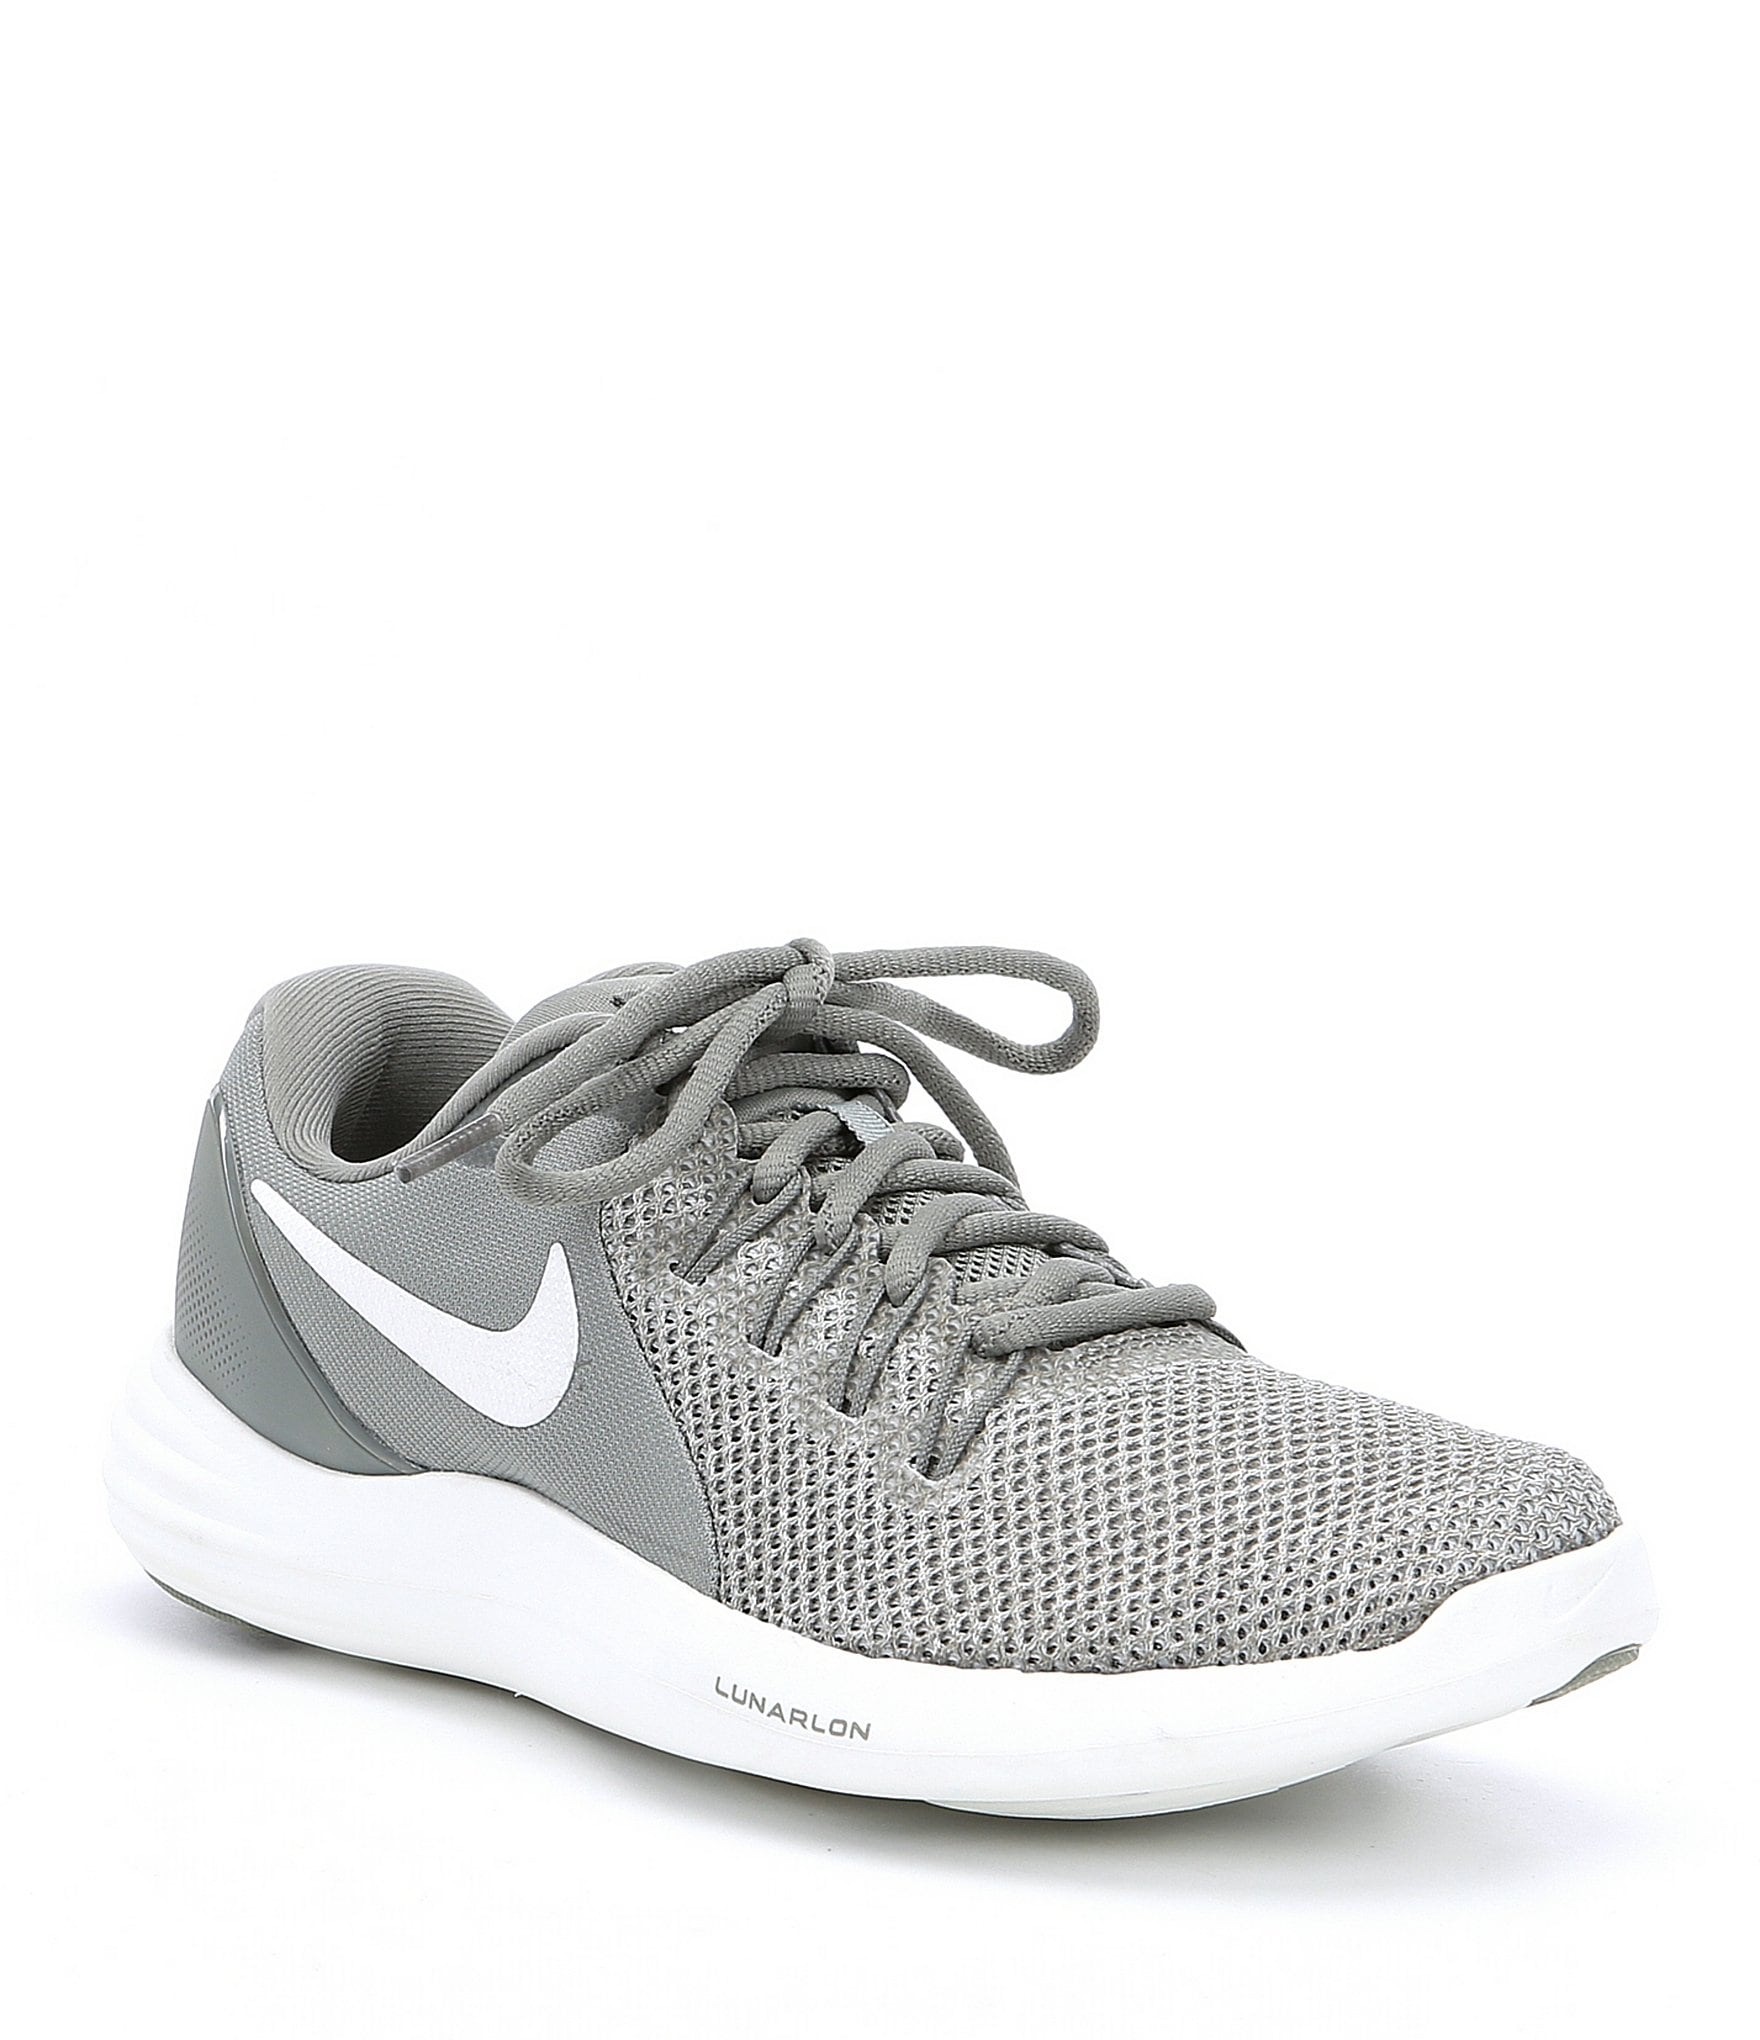 nike shoes for 39 99 cent stores houston 832049